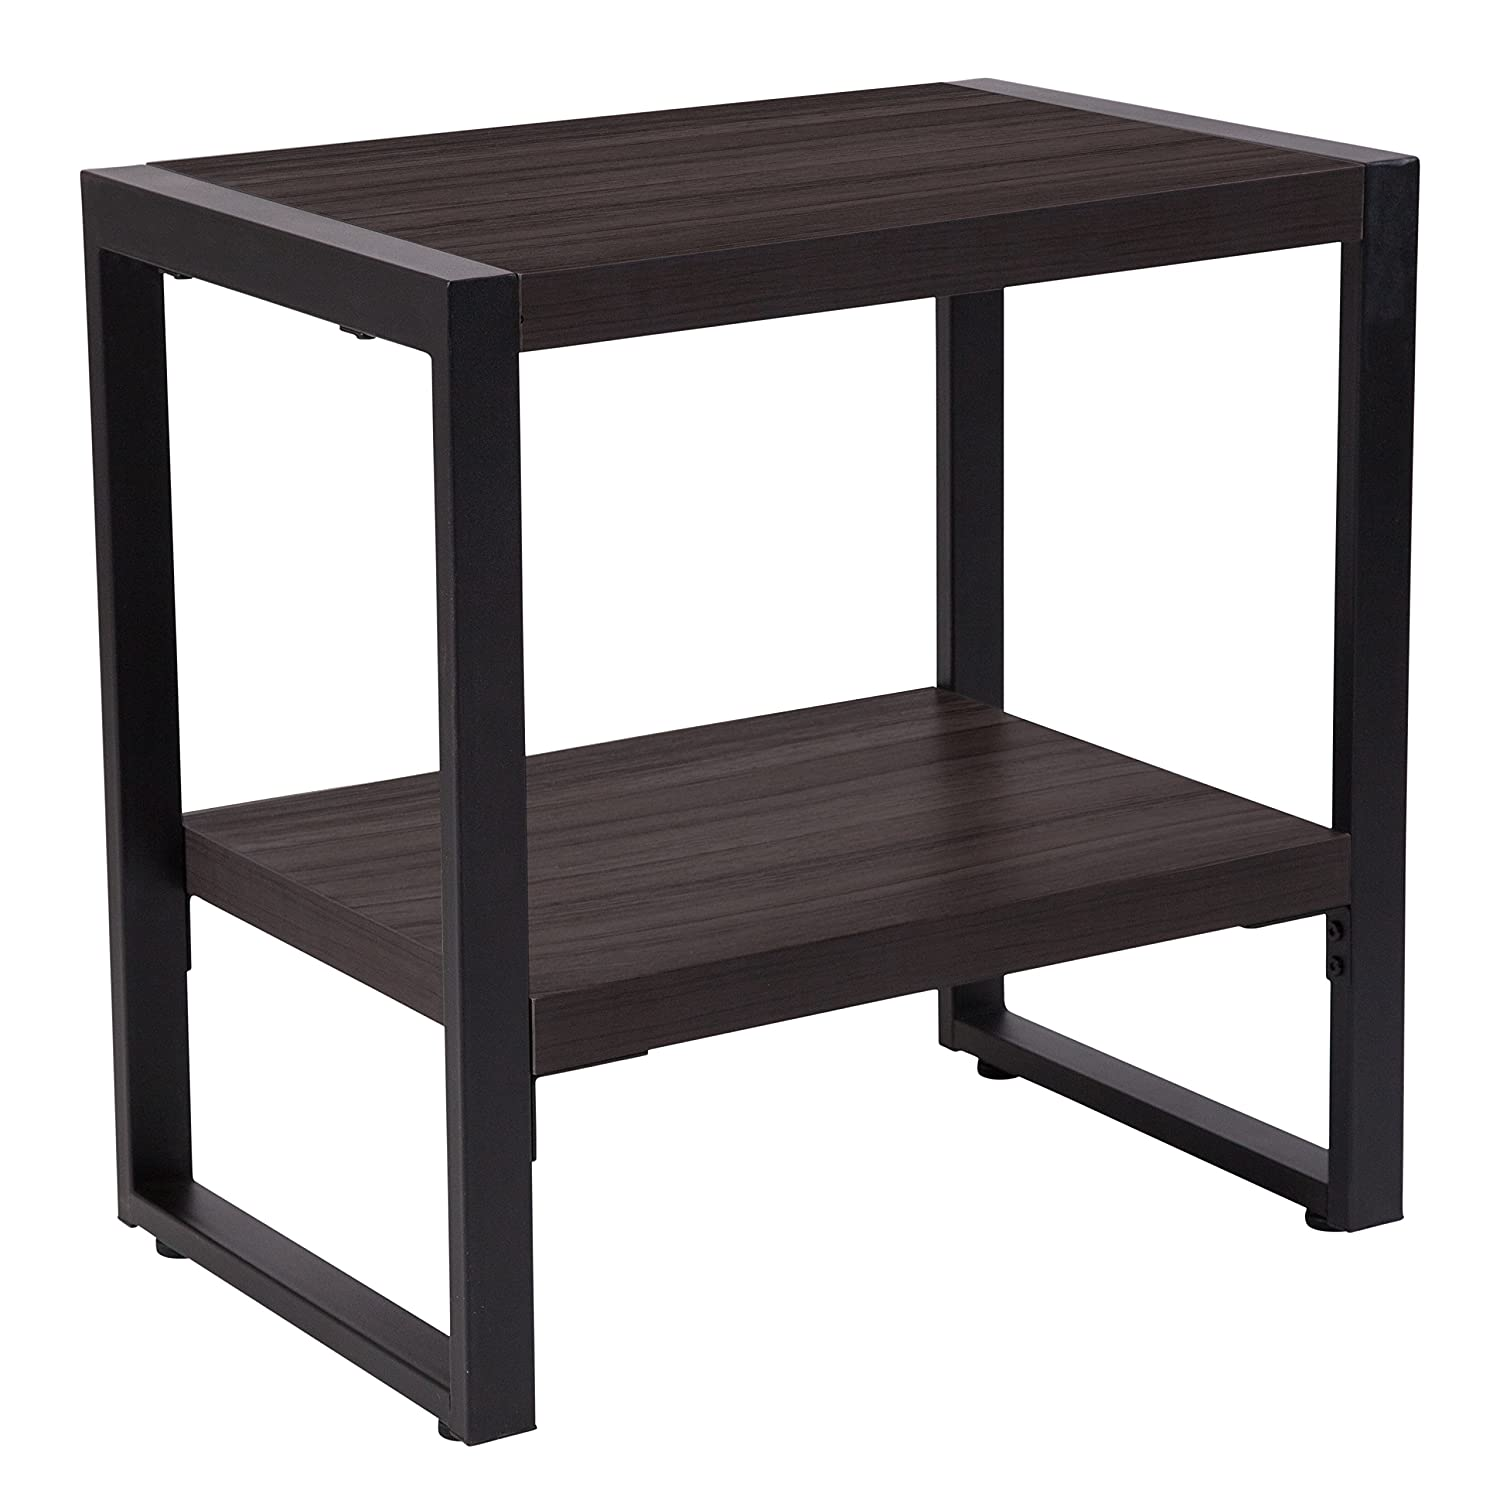 Flash Furniture Thompson Collection Charcoal Wood Grain Finish End Table with Black Metal Frame